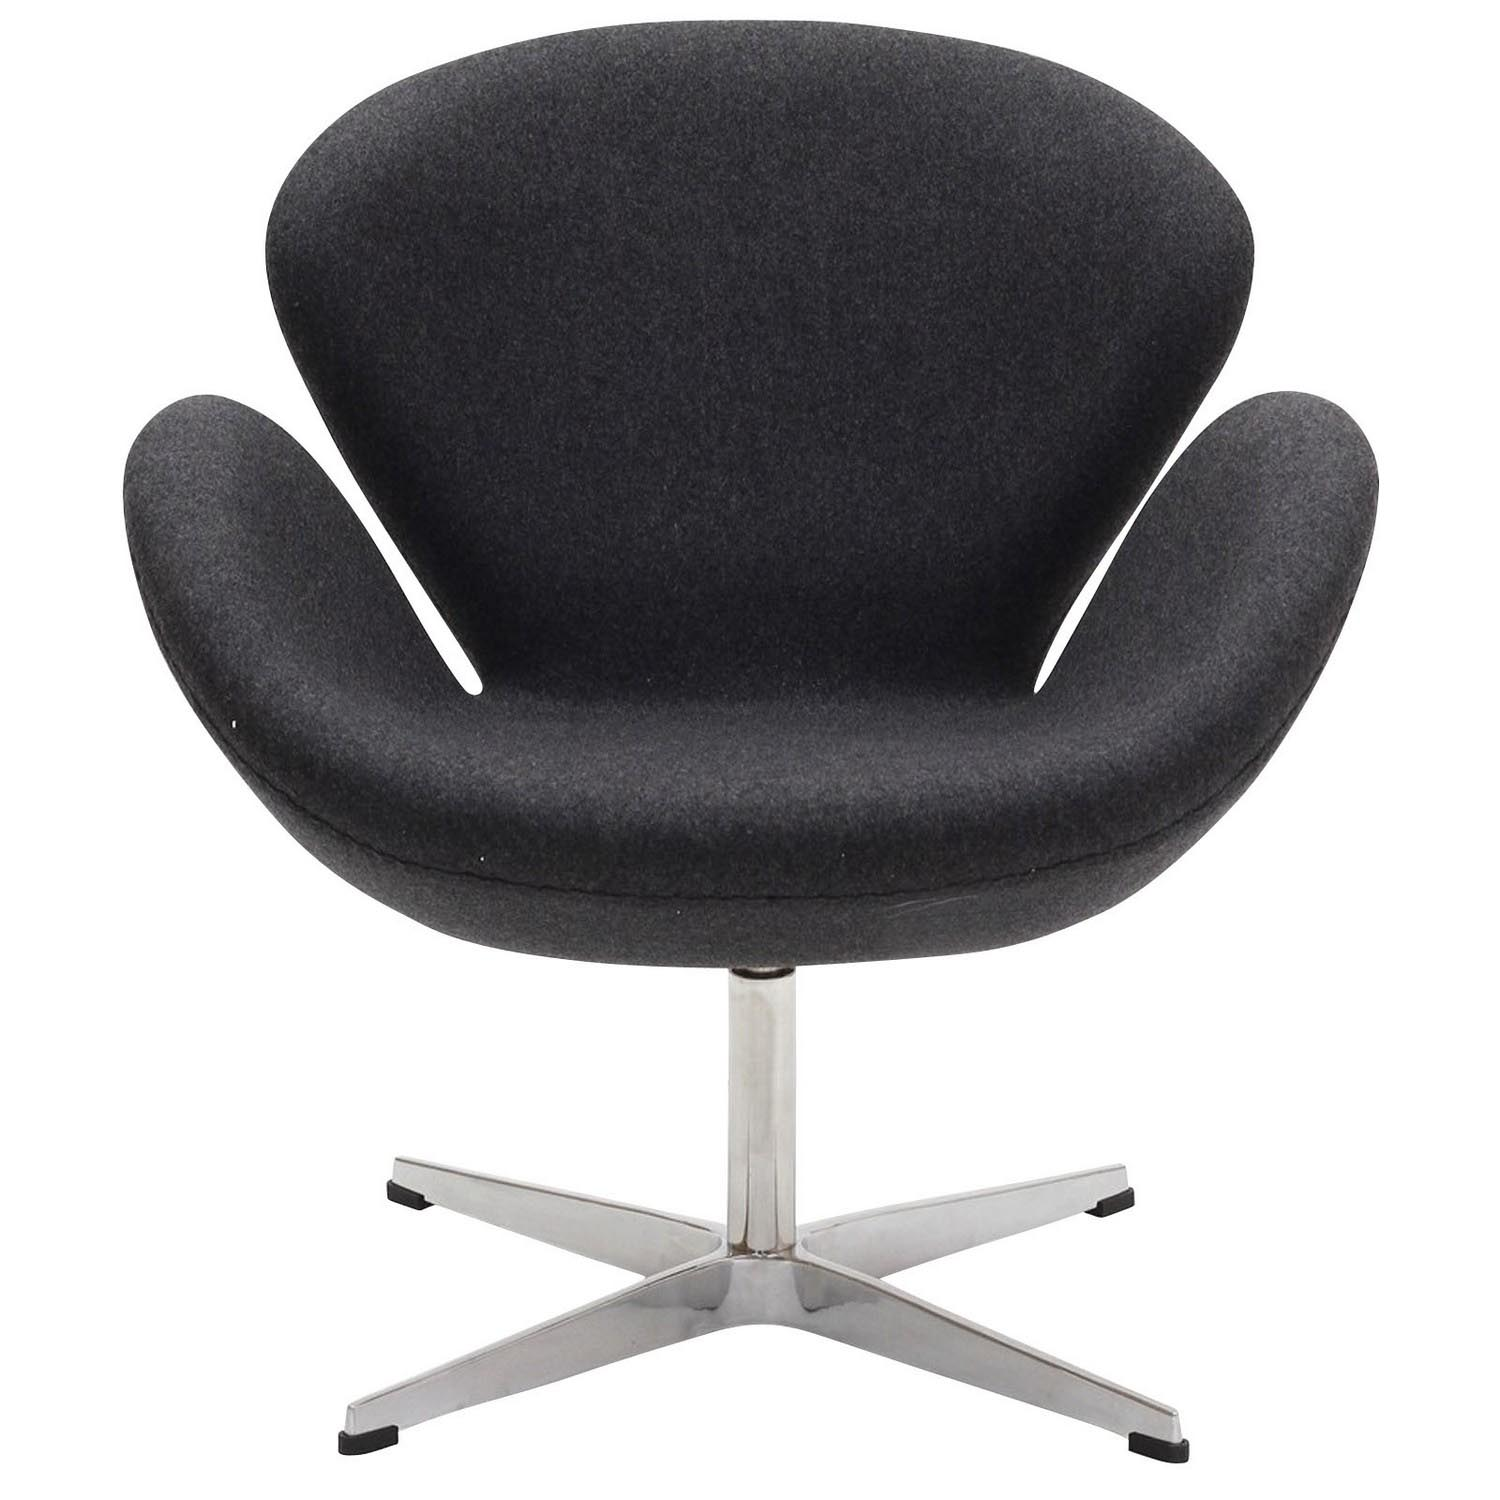 Modway Wing Lounge Chair - Dark Gray